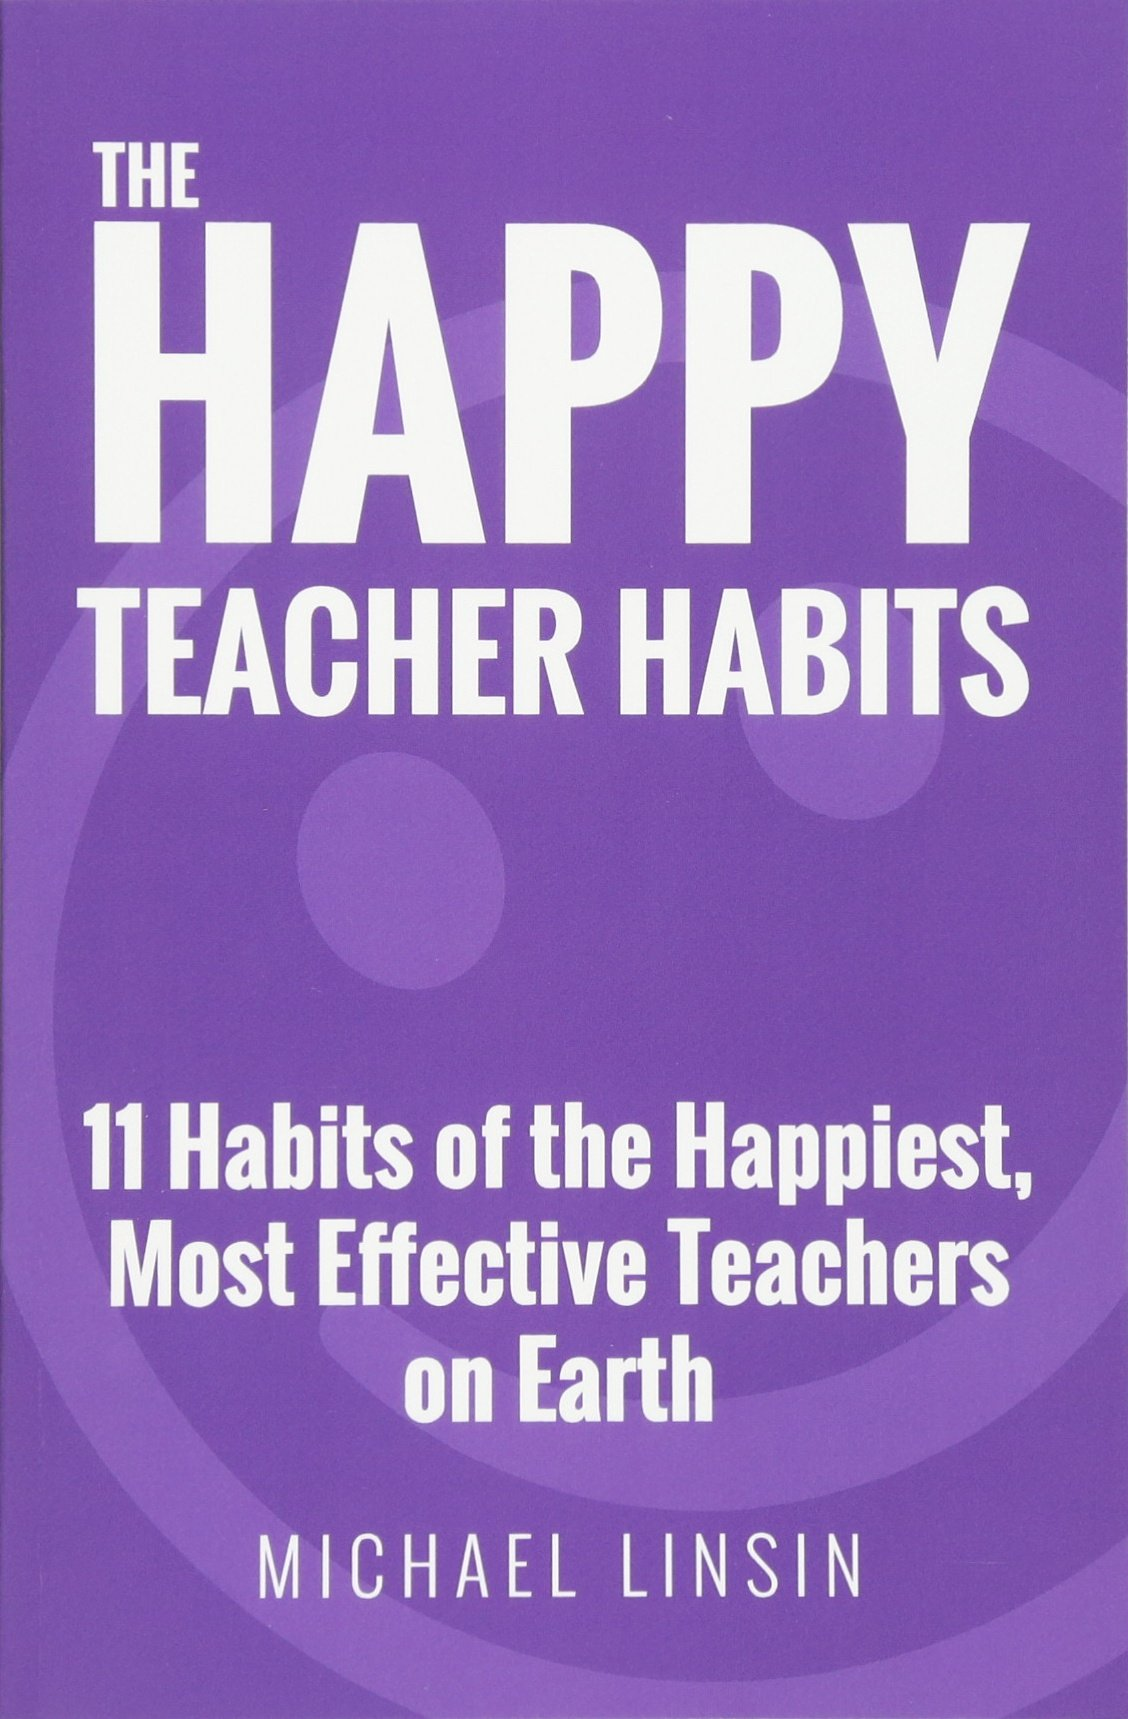 The Happy Teacher Habits: 11 Habits of the Happiest, Most Effective Teachers  on Earth: Michael Linsin: 9780692659243: Amazon.com: Books